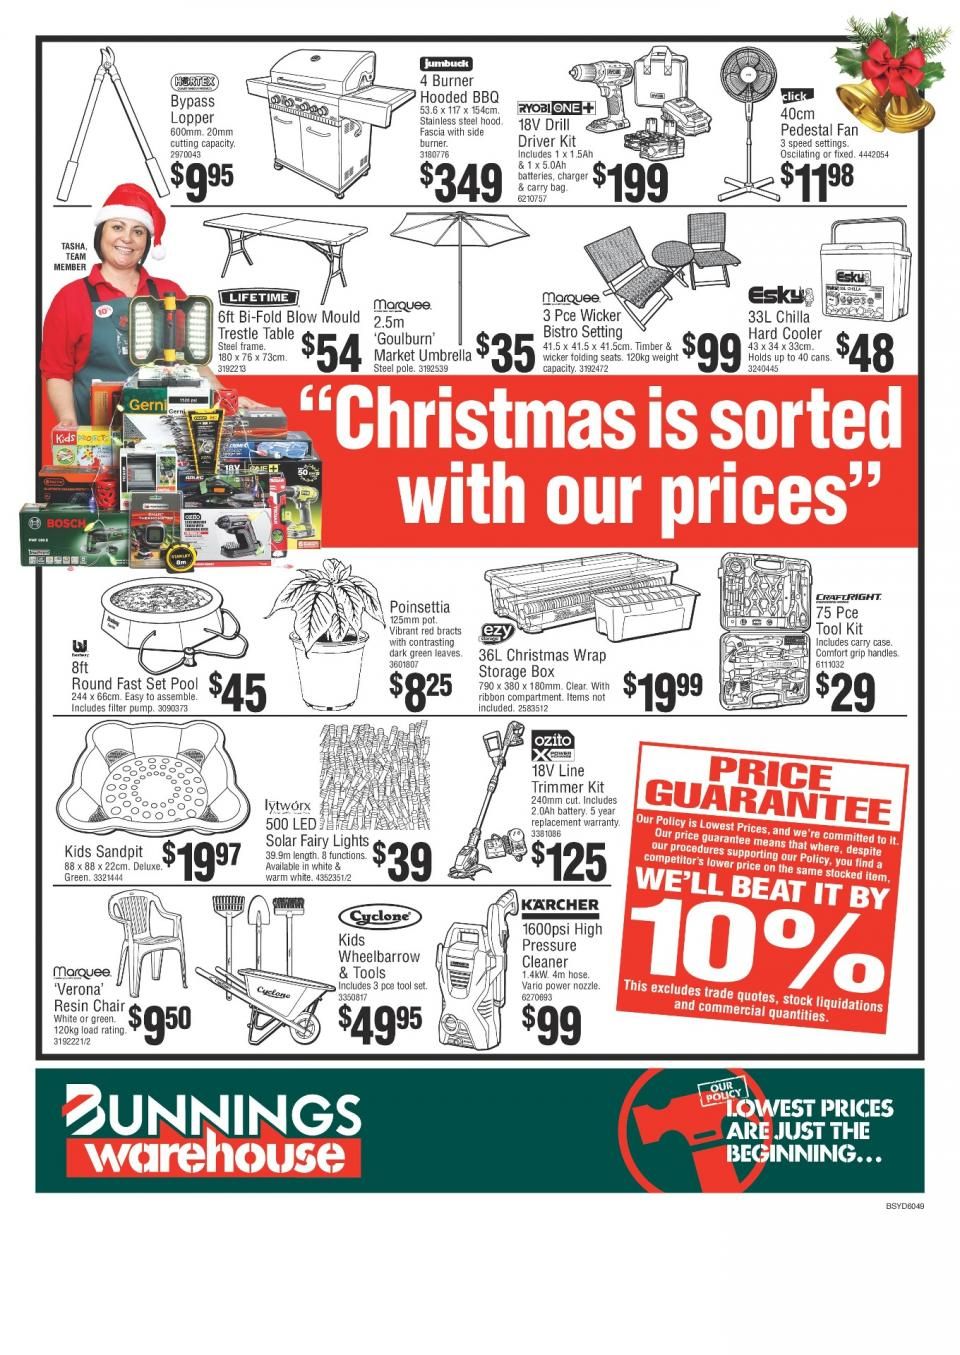 Bunnings Catalogue Christmas Sale 2017